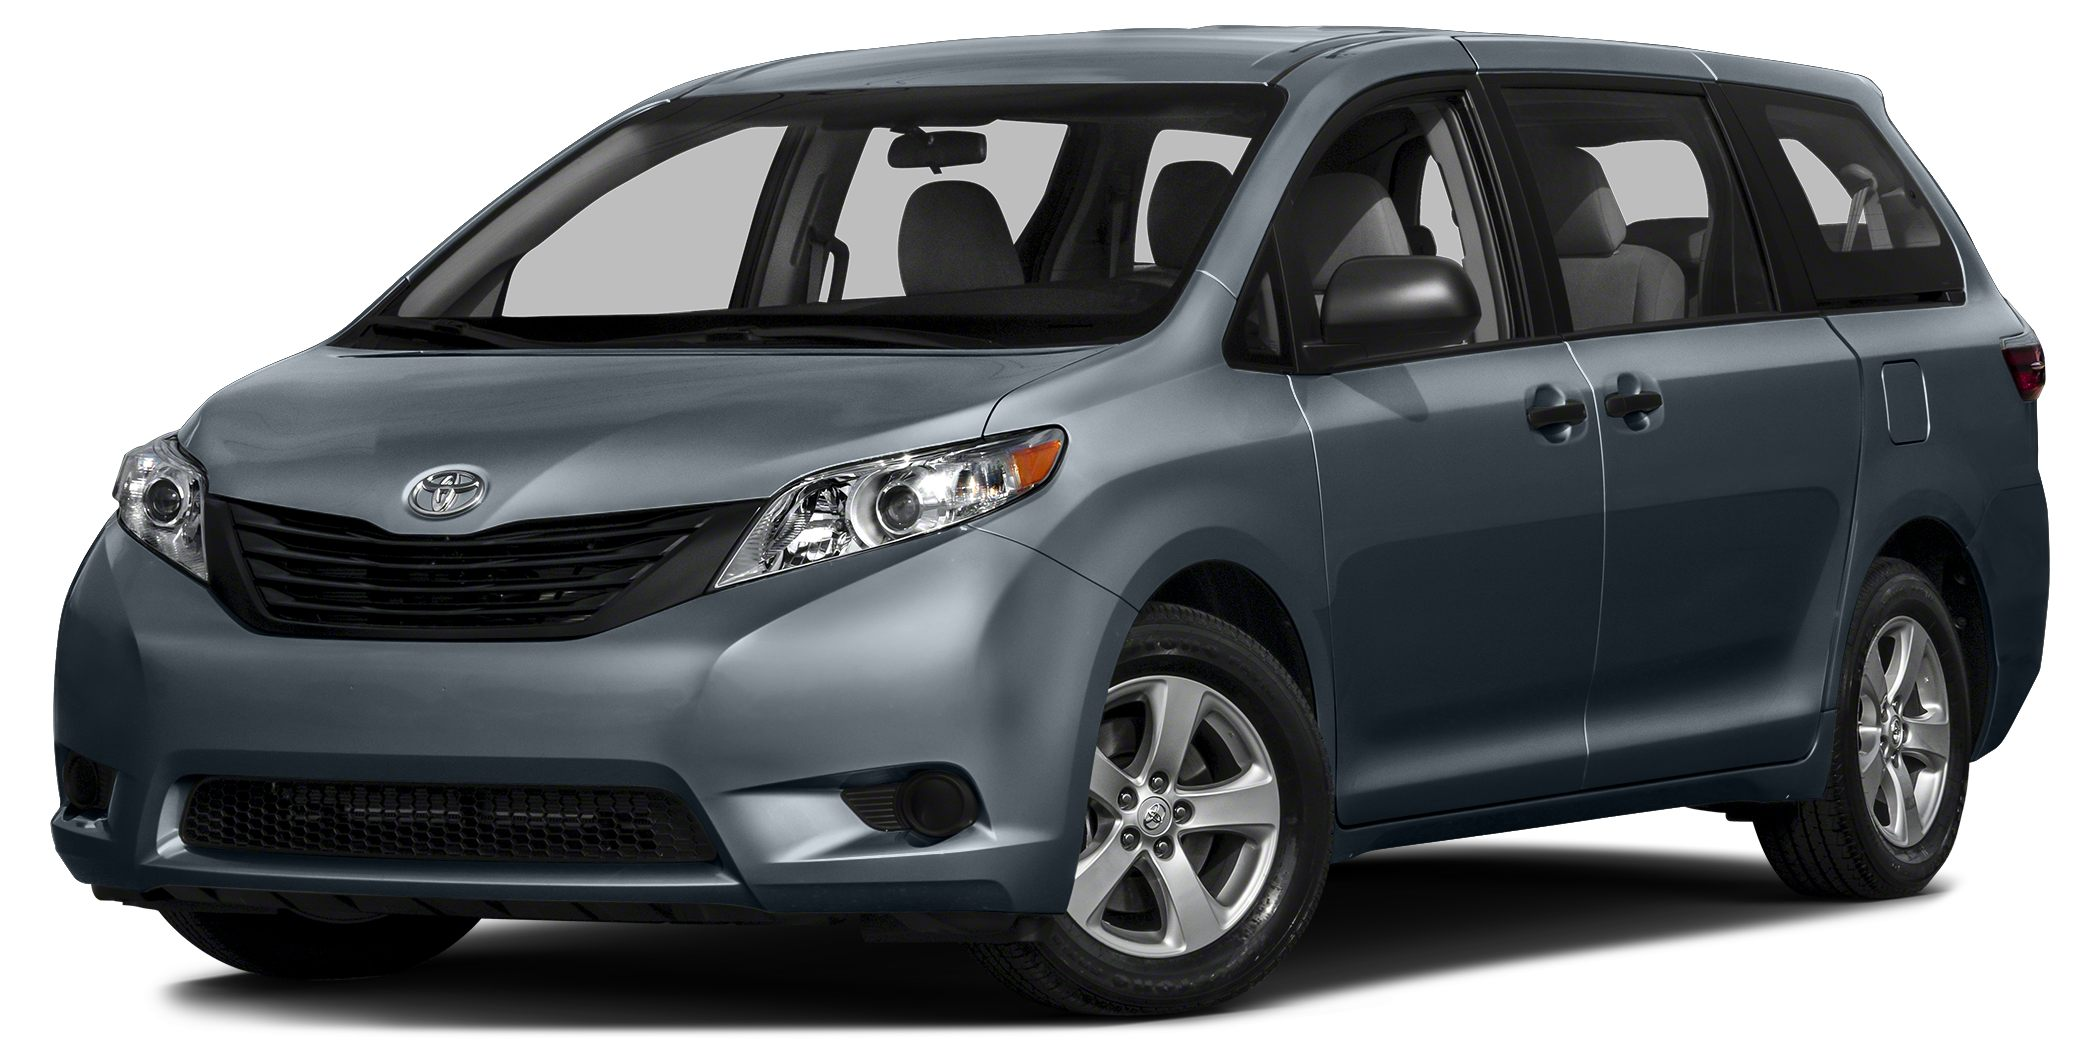 2015 Toyota Sienna Limited 7 Passenger Families always have somewhere to go and the Toyota Sienna